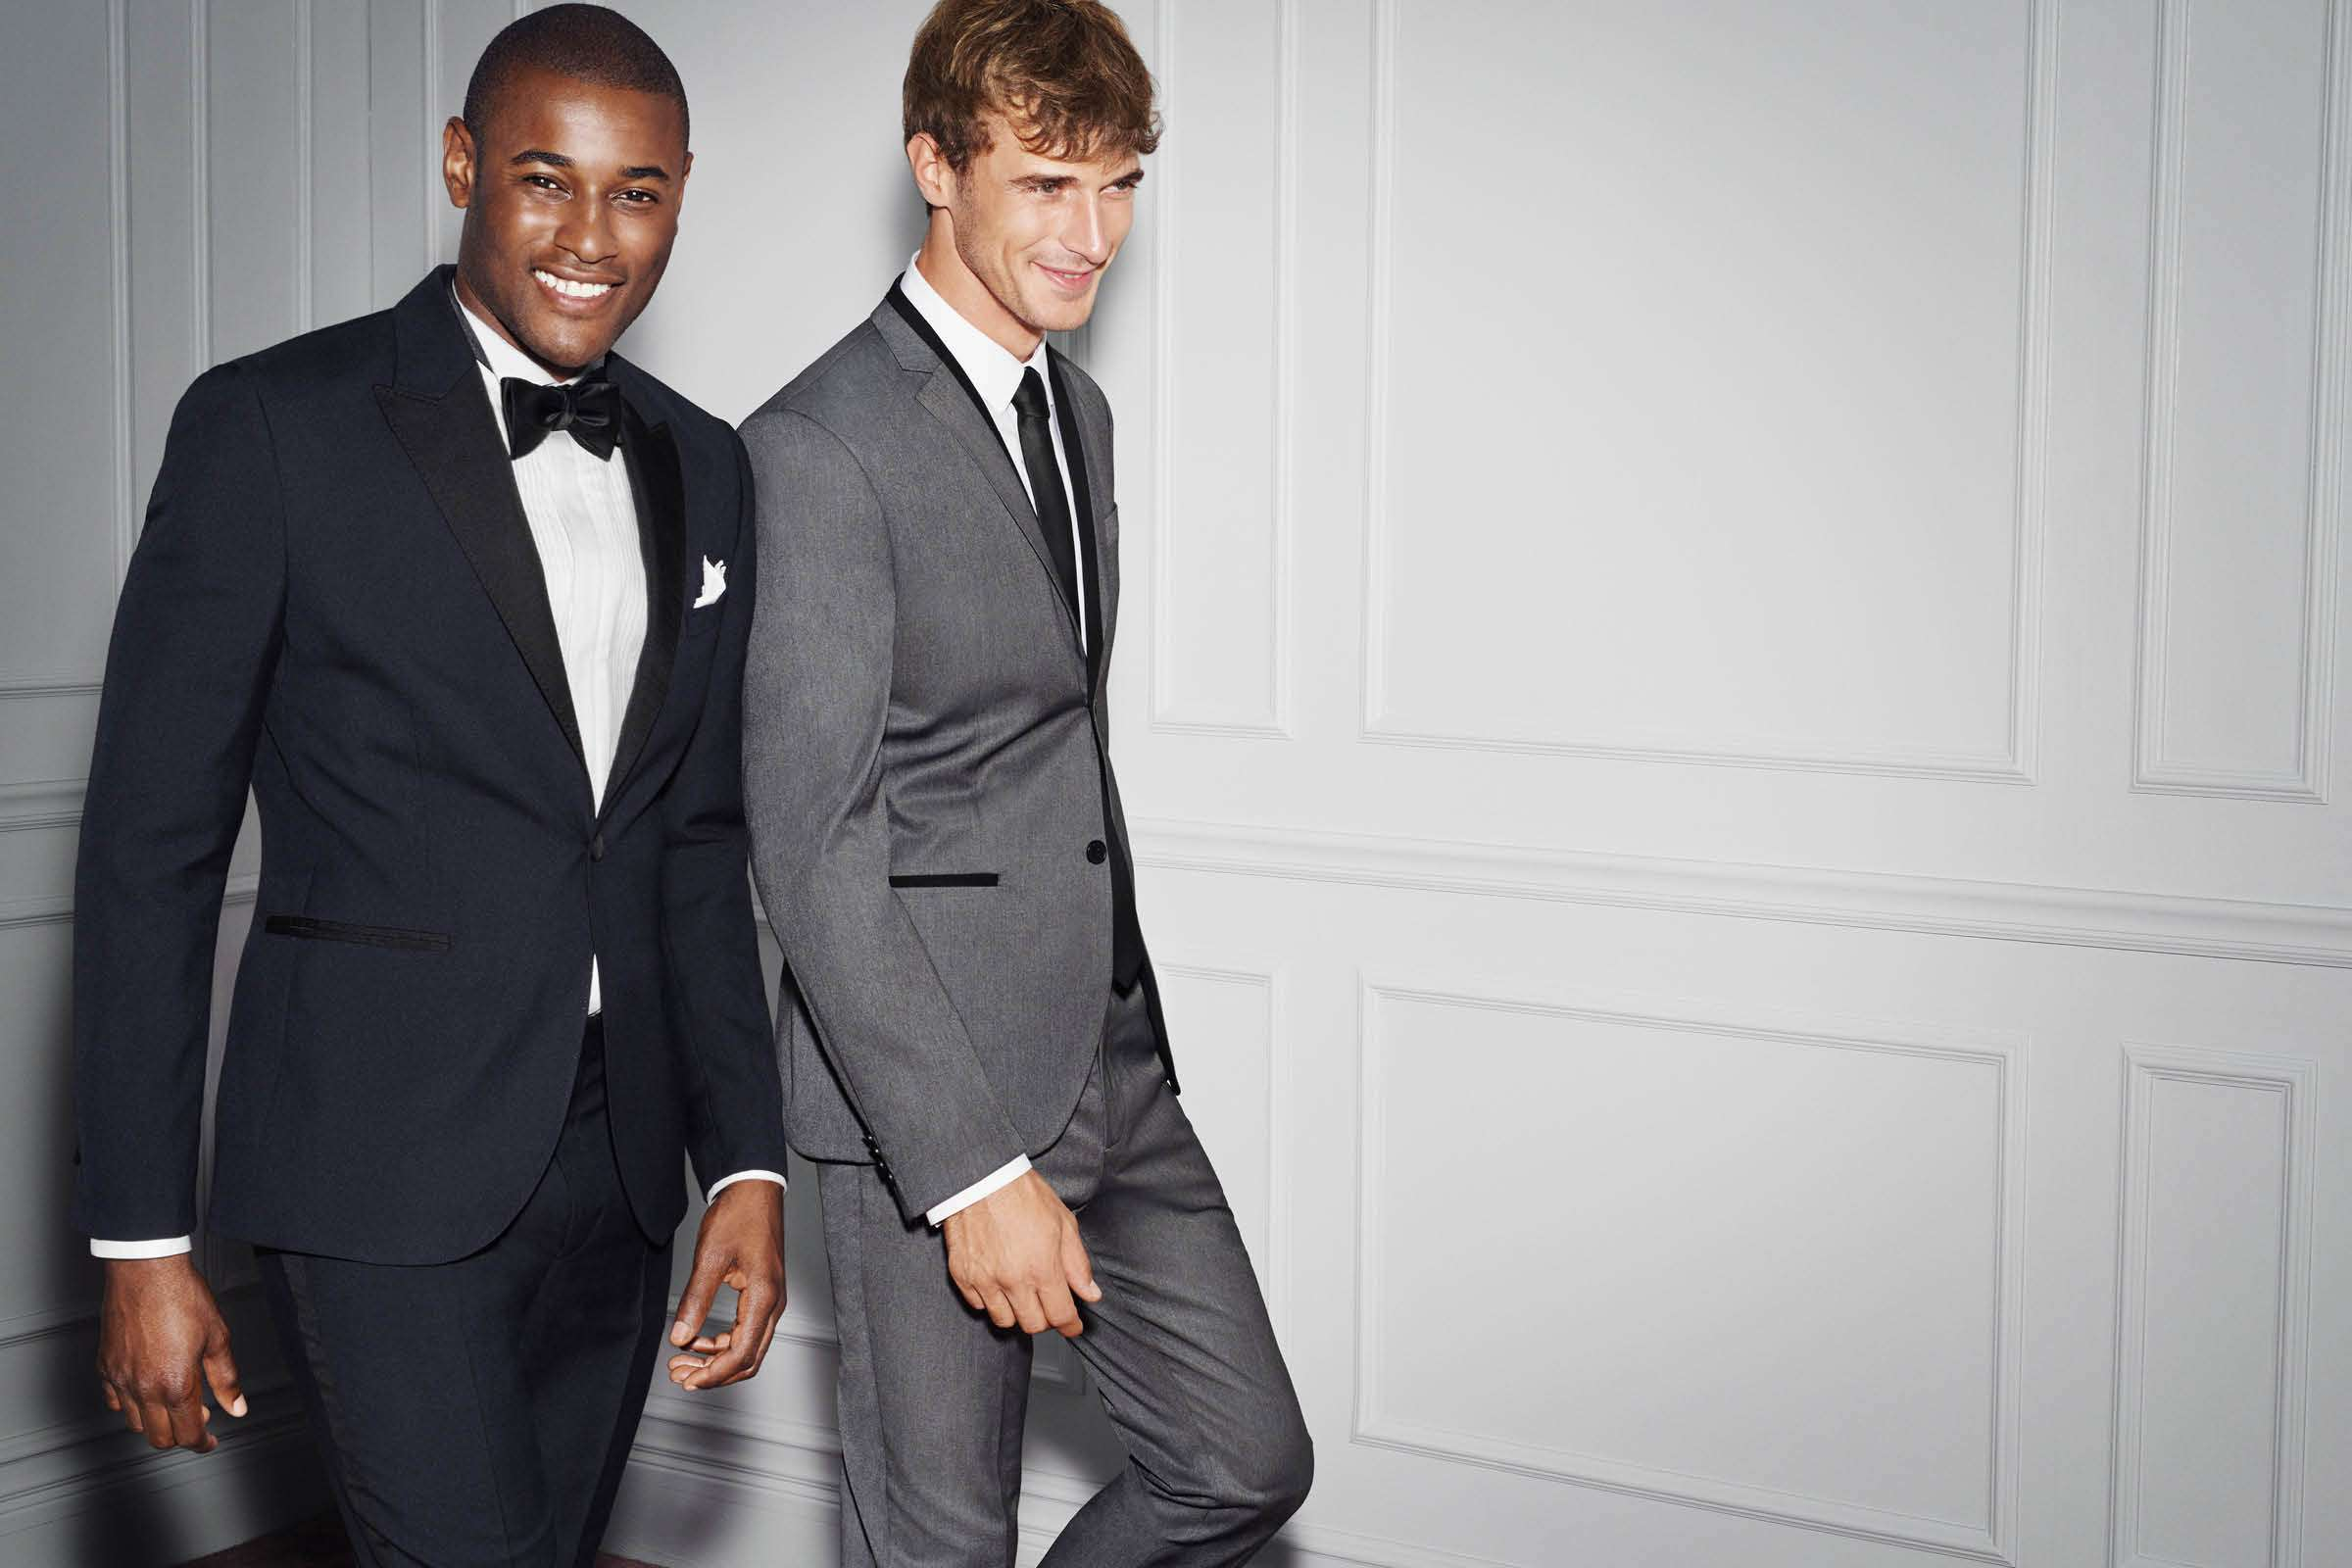 Cocktail Attire for Men: H&M Goes Formal  The Fashionisto